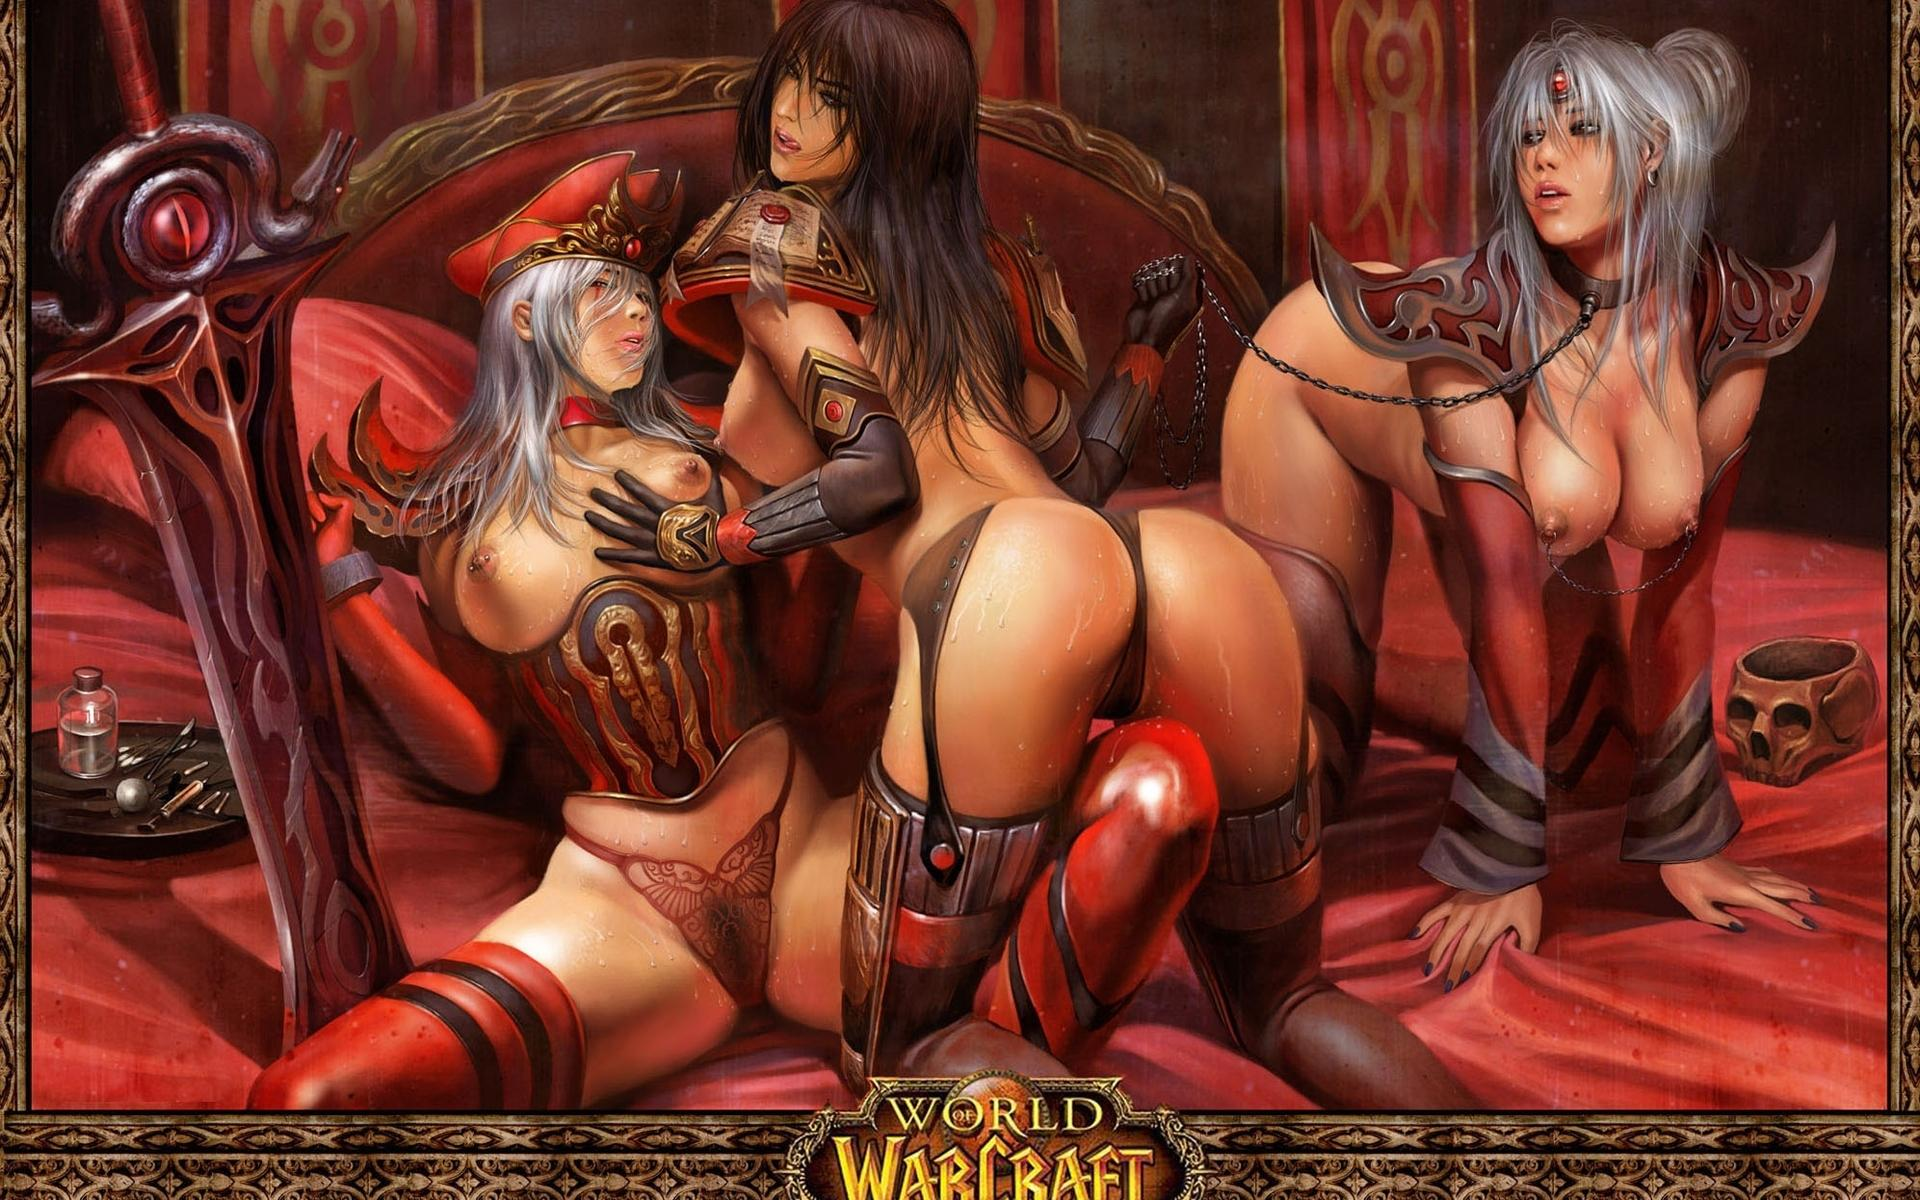 Free online world of warcraft bdsm videos porn pictures